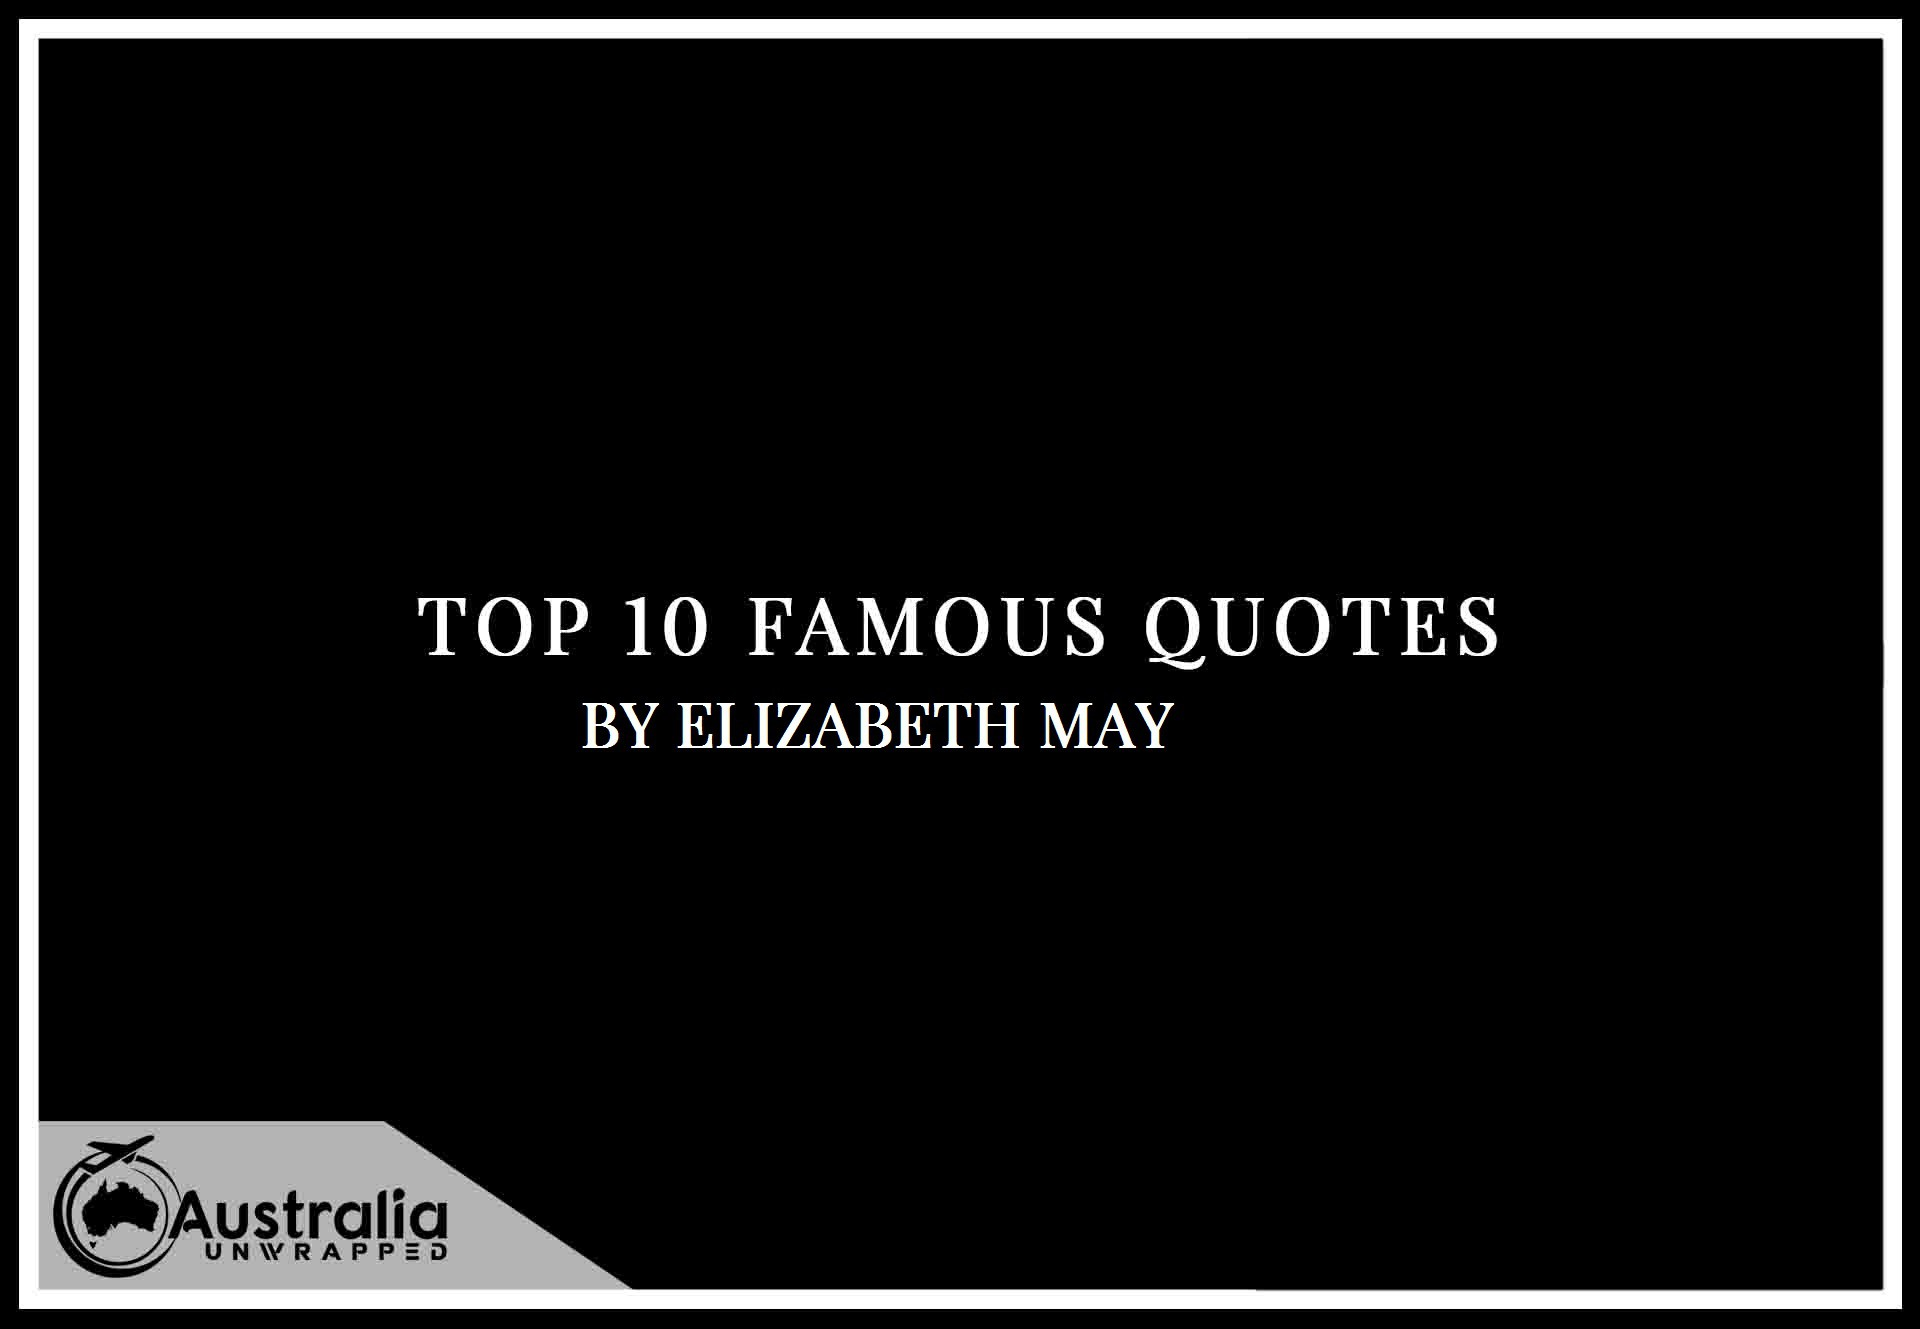 Elizabeth May's Top 10 Popular and Famous Quotes